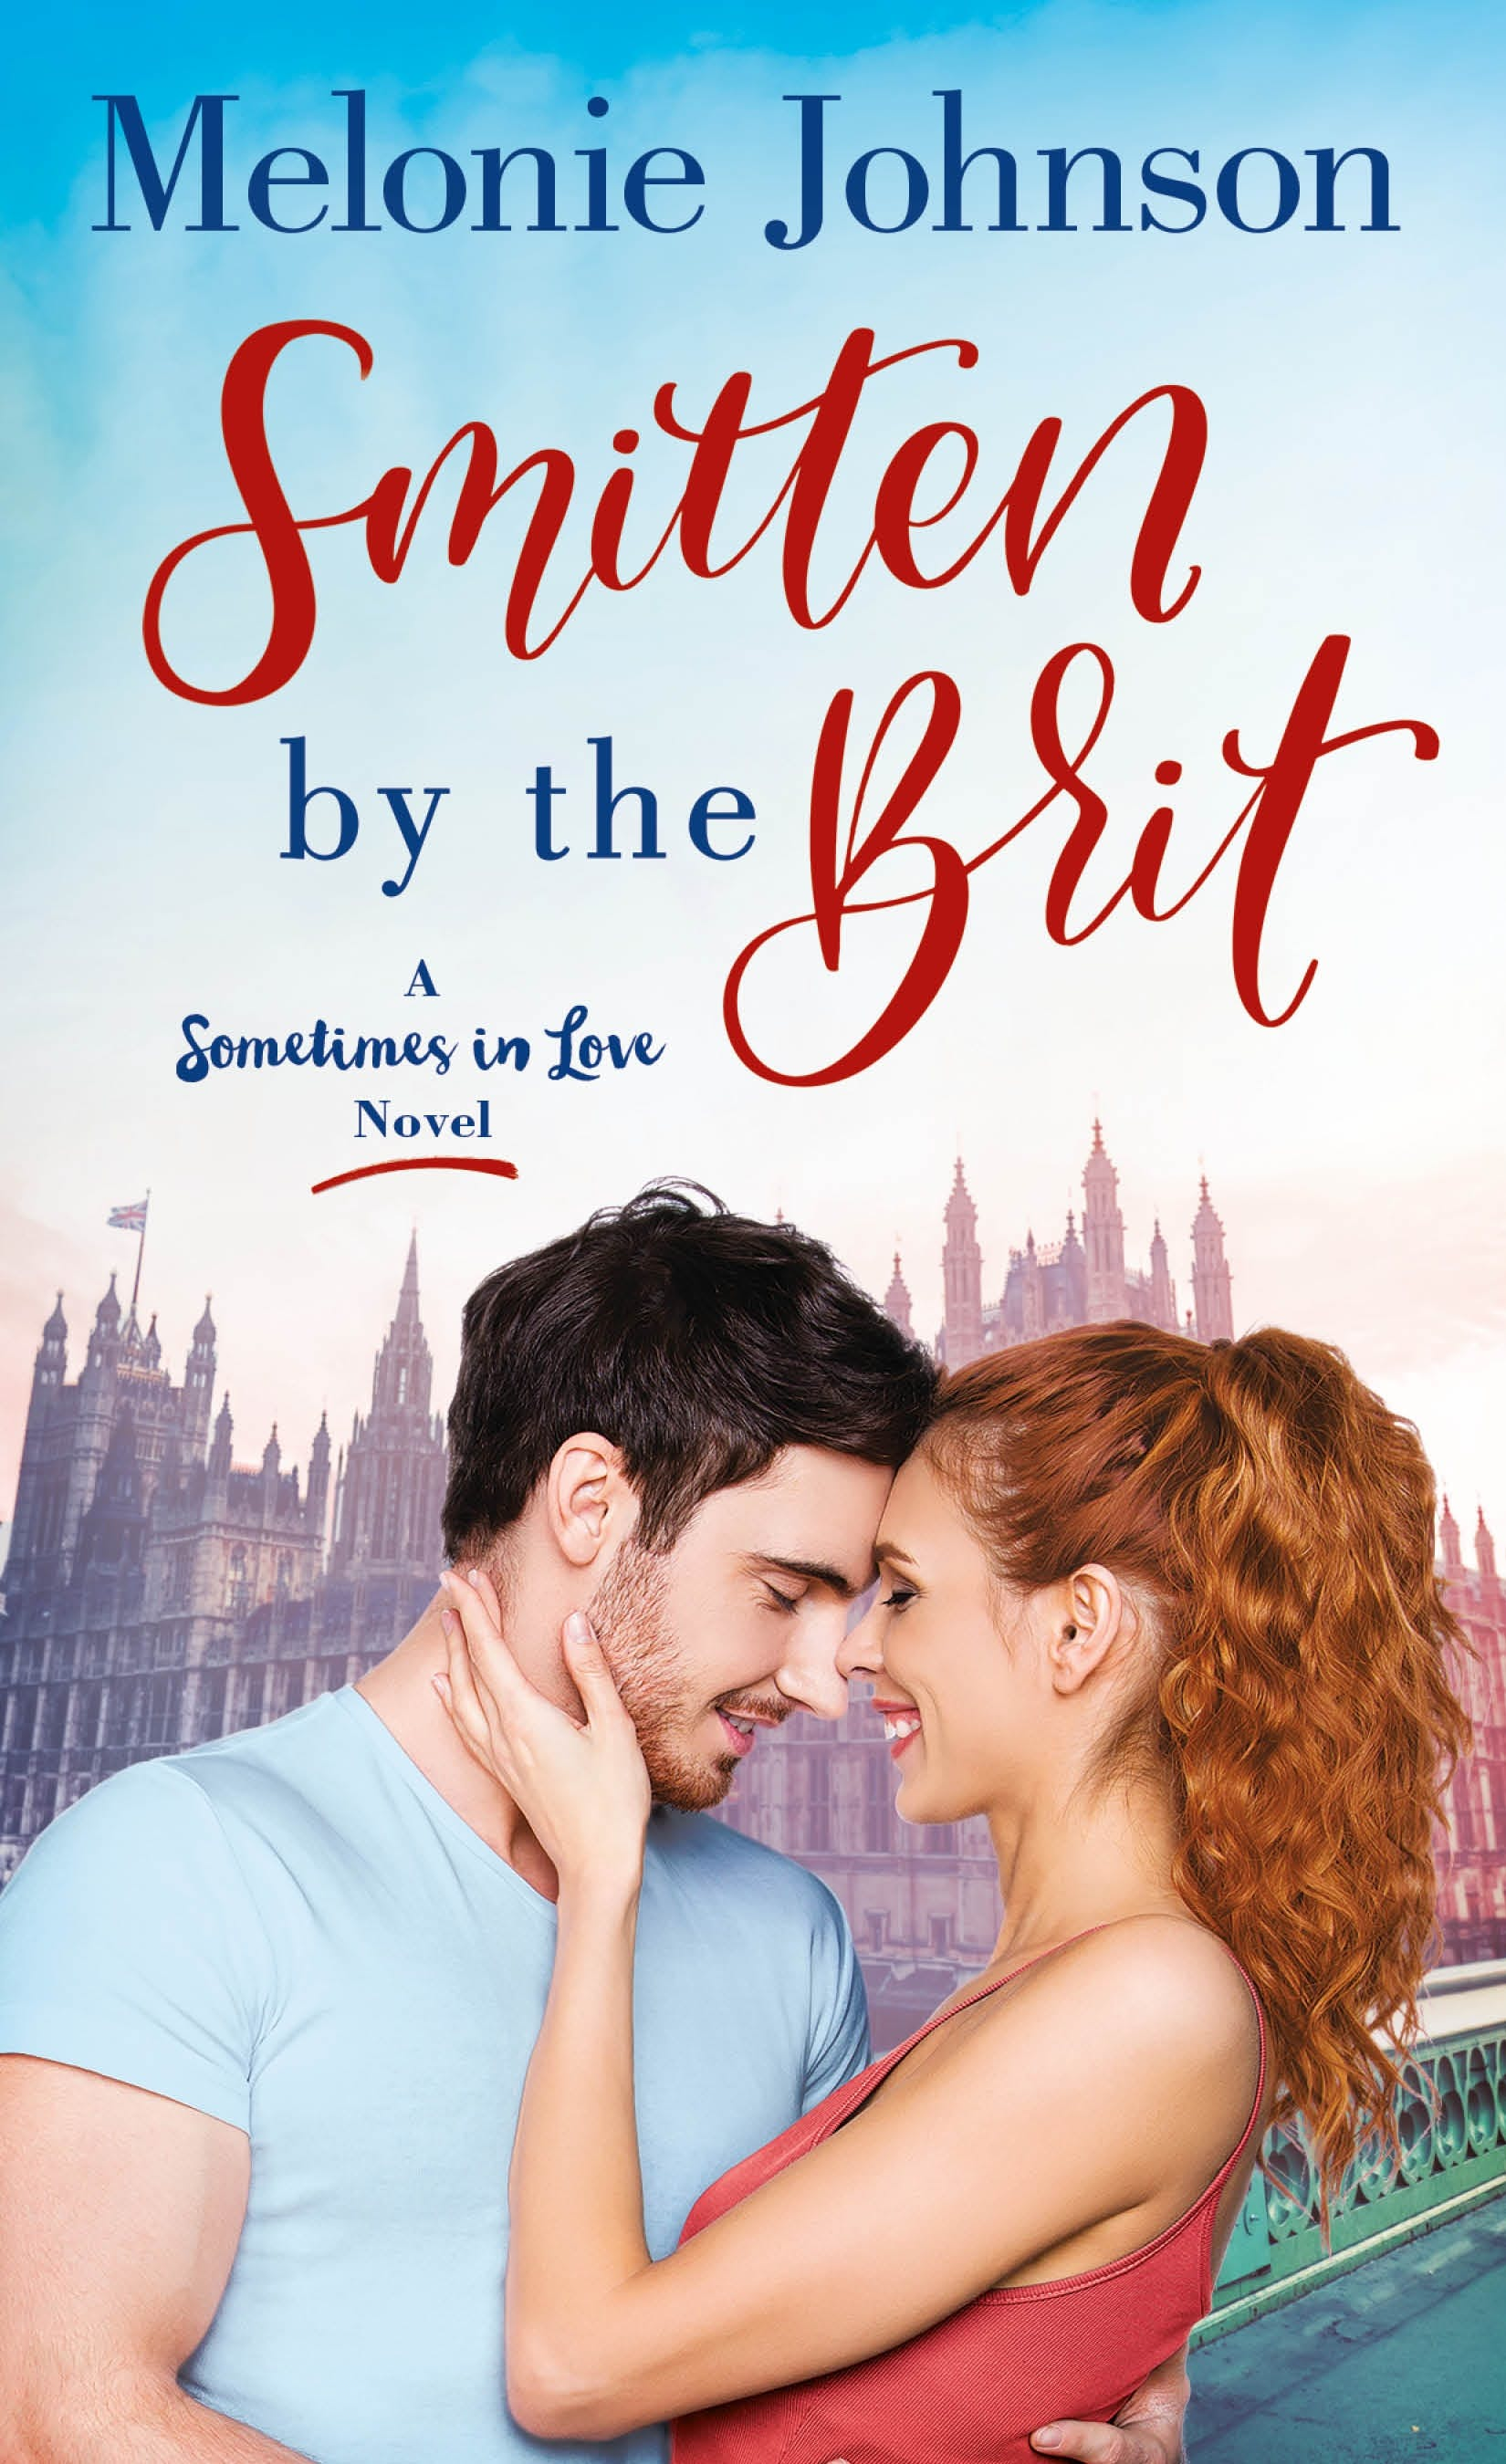 Image of Smitten by the Brit